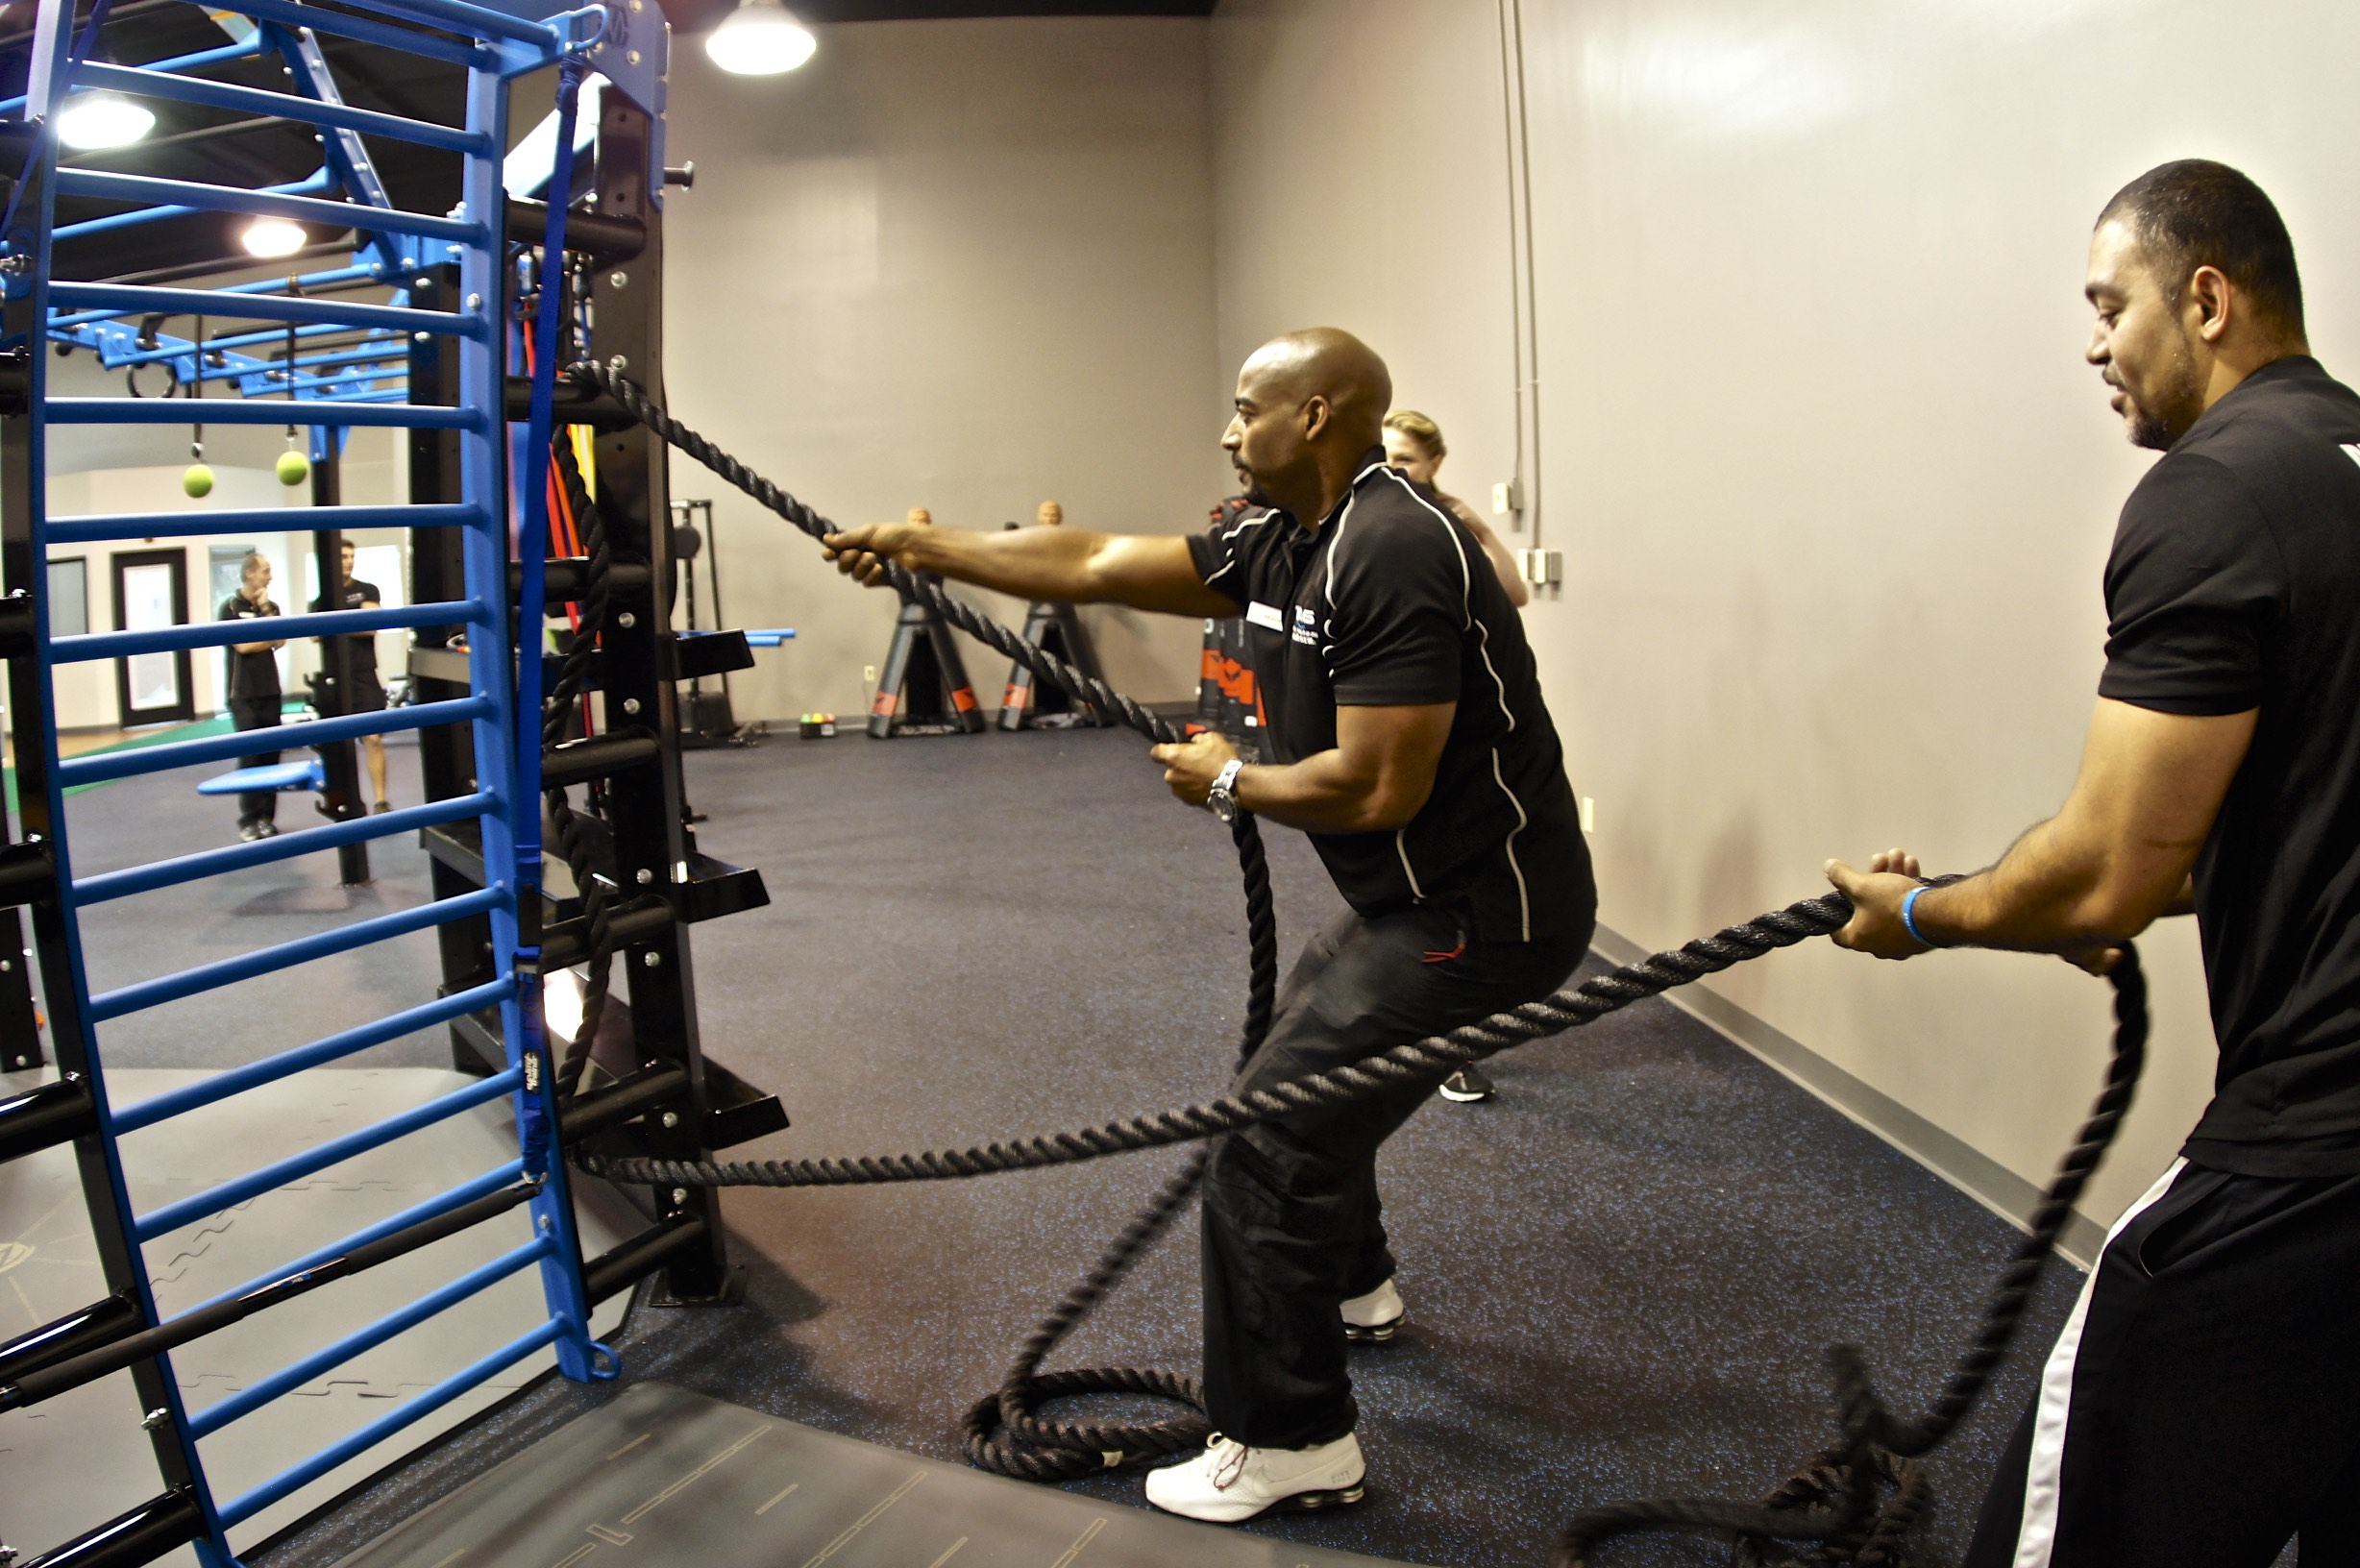 Battle training ropes used on rope ladder